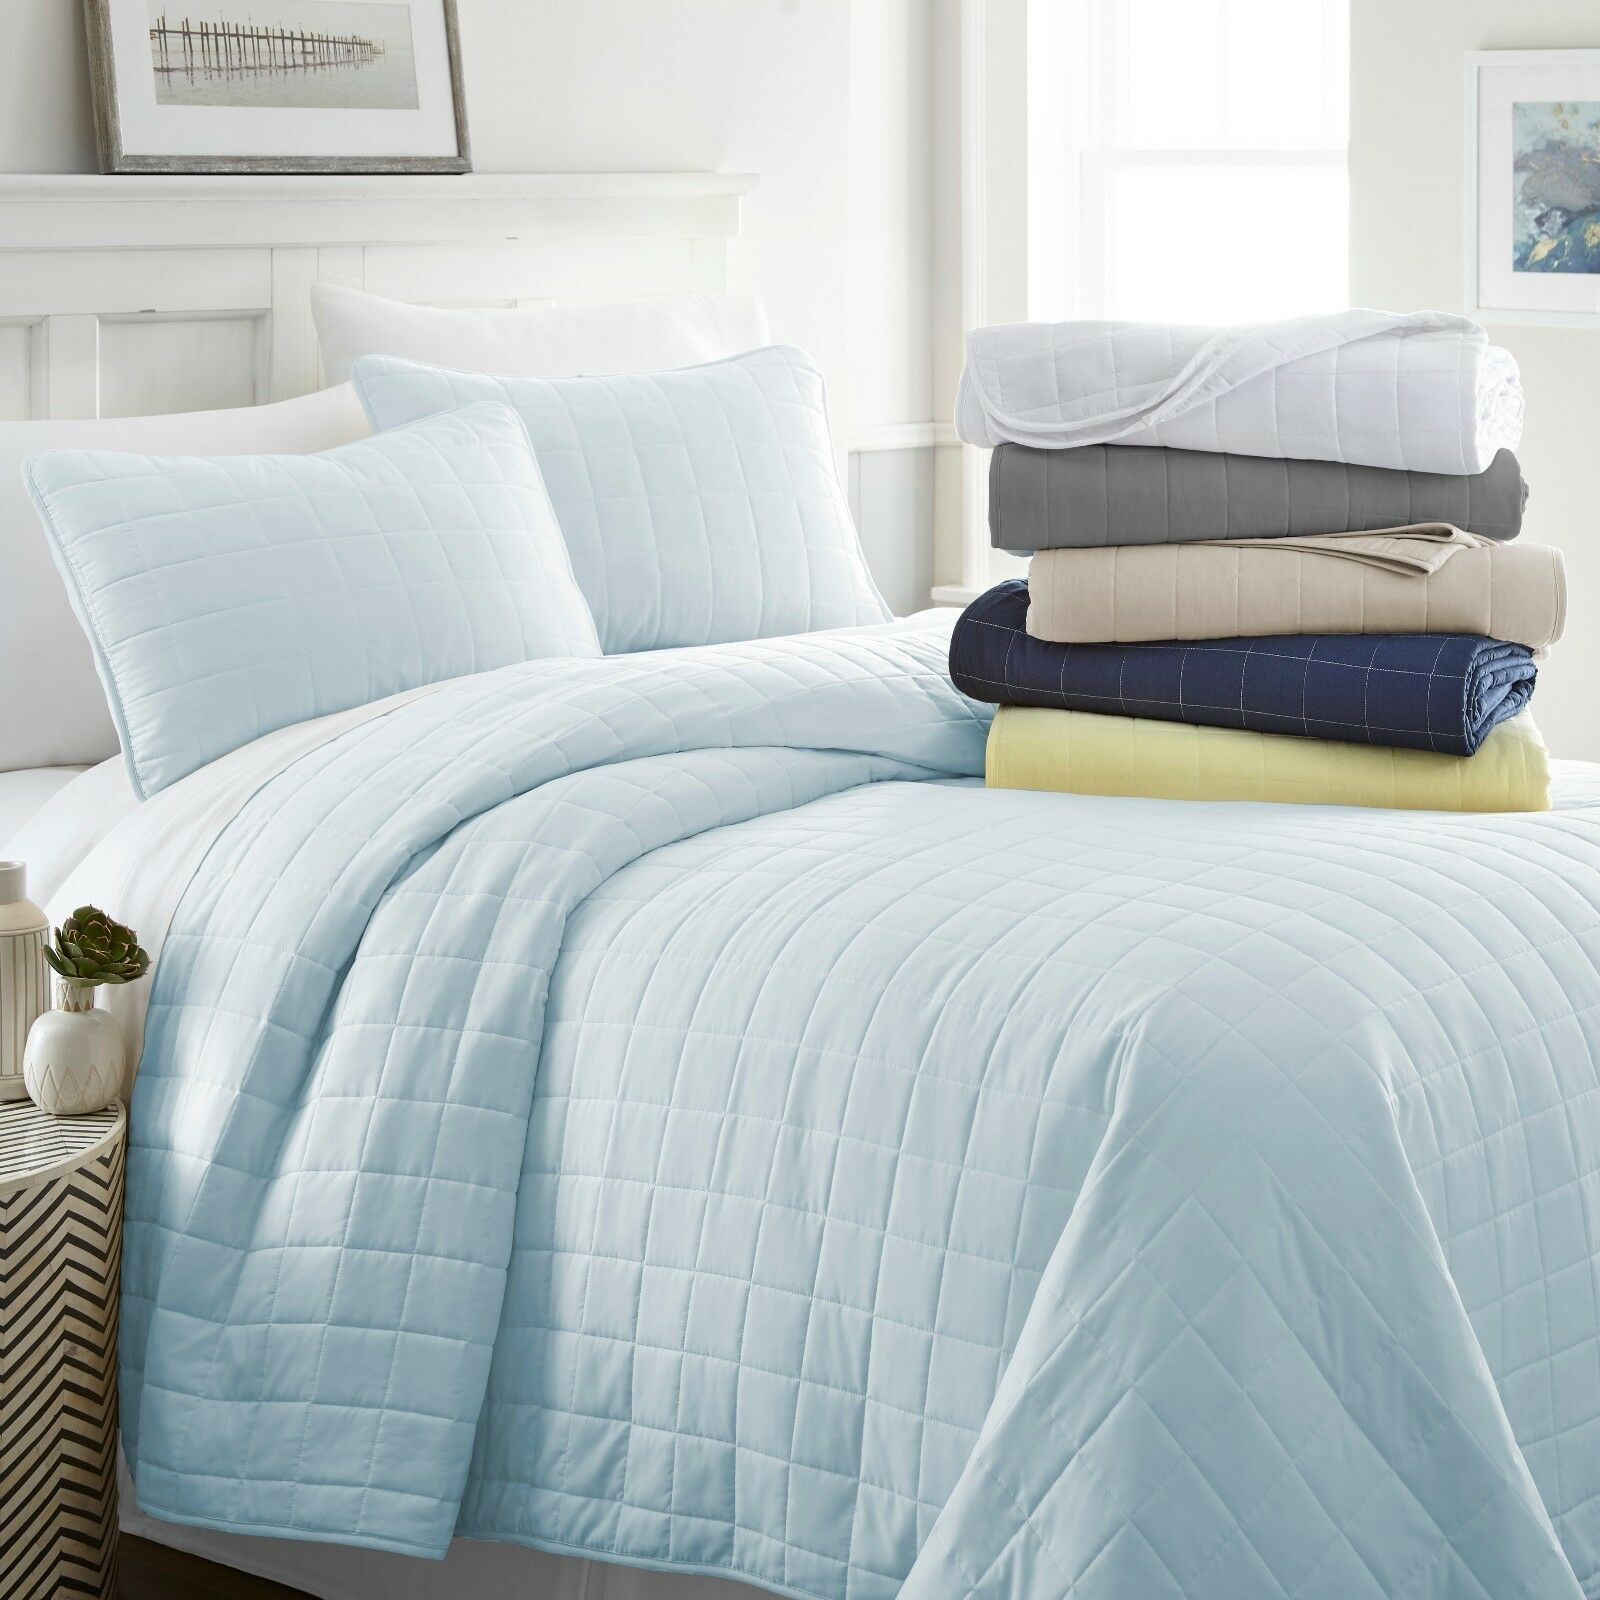 Linen Market Ultra Soft Hypoallergenic Quilted 3 Piece Coverlet Set - 3 Designs